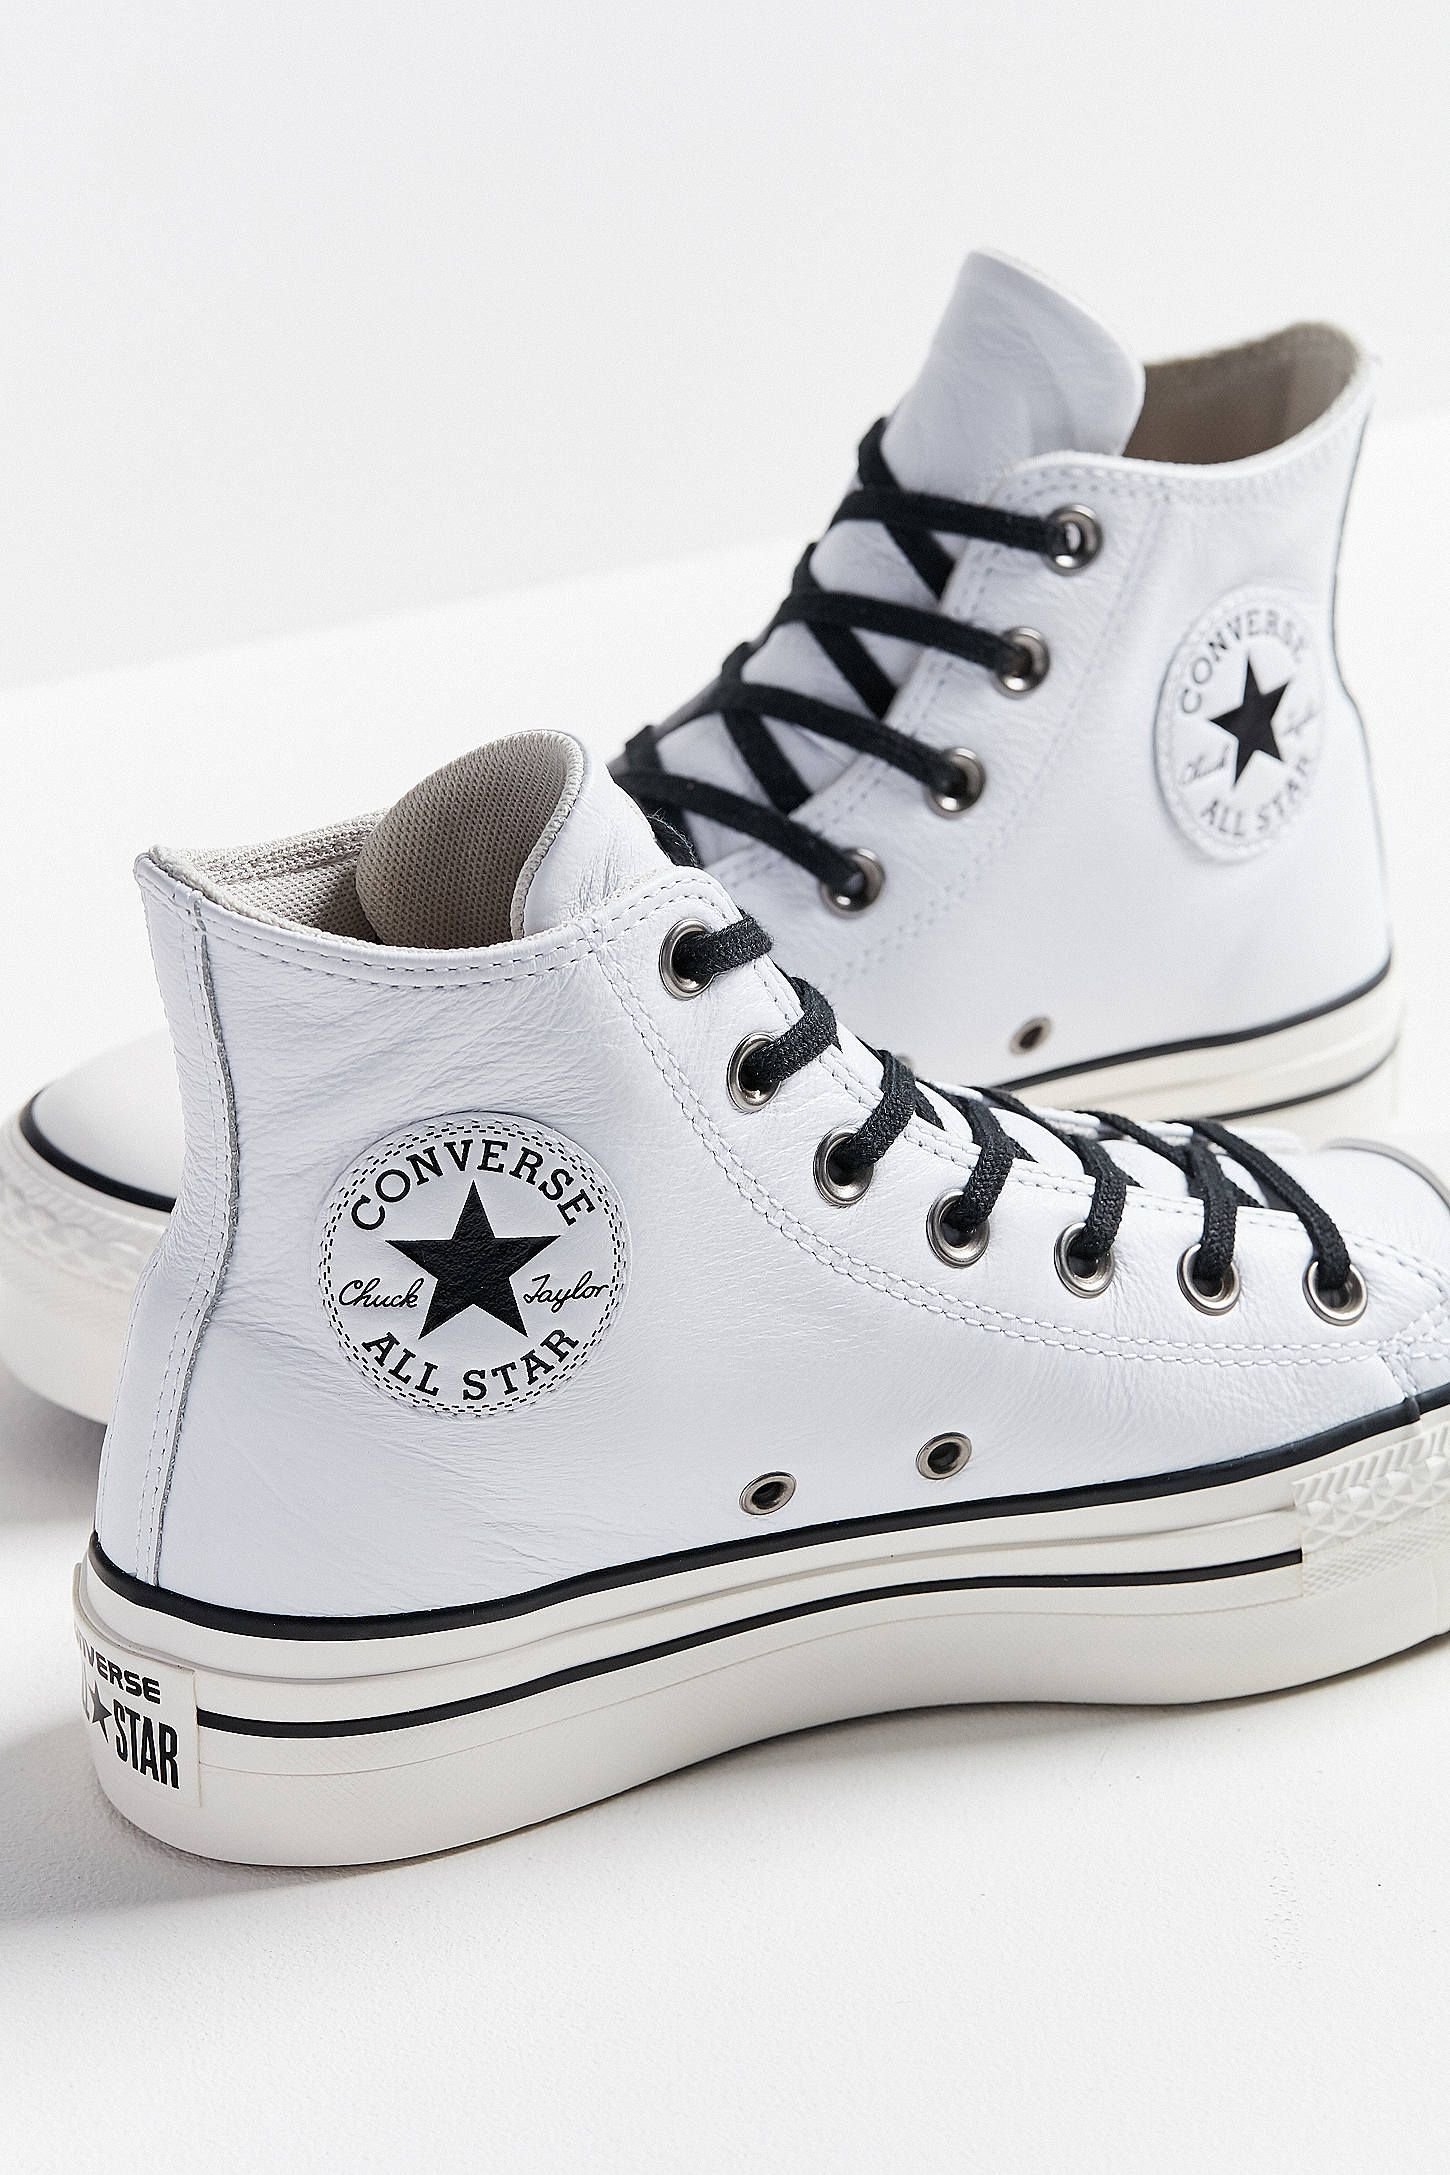 a57c4c0da30c Slide View  5  Converse Chuck Taylor All Star Platform High Top Sneaker